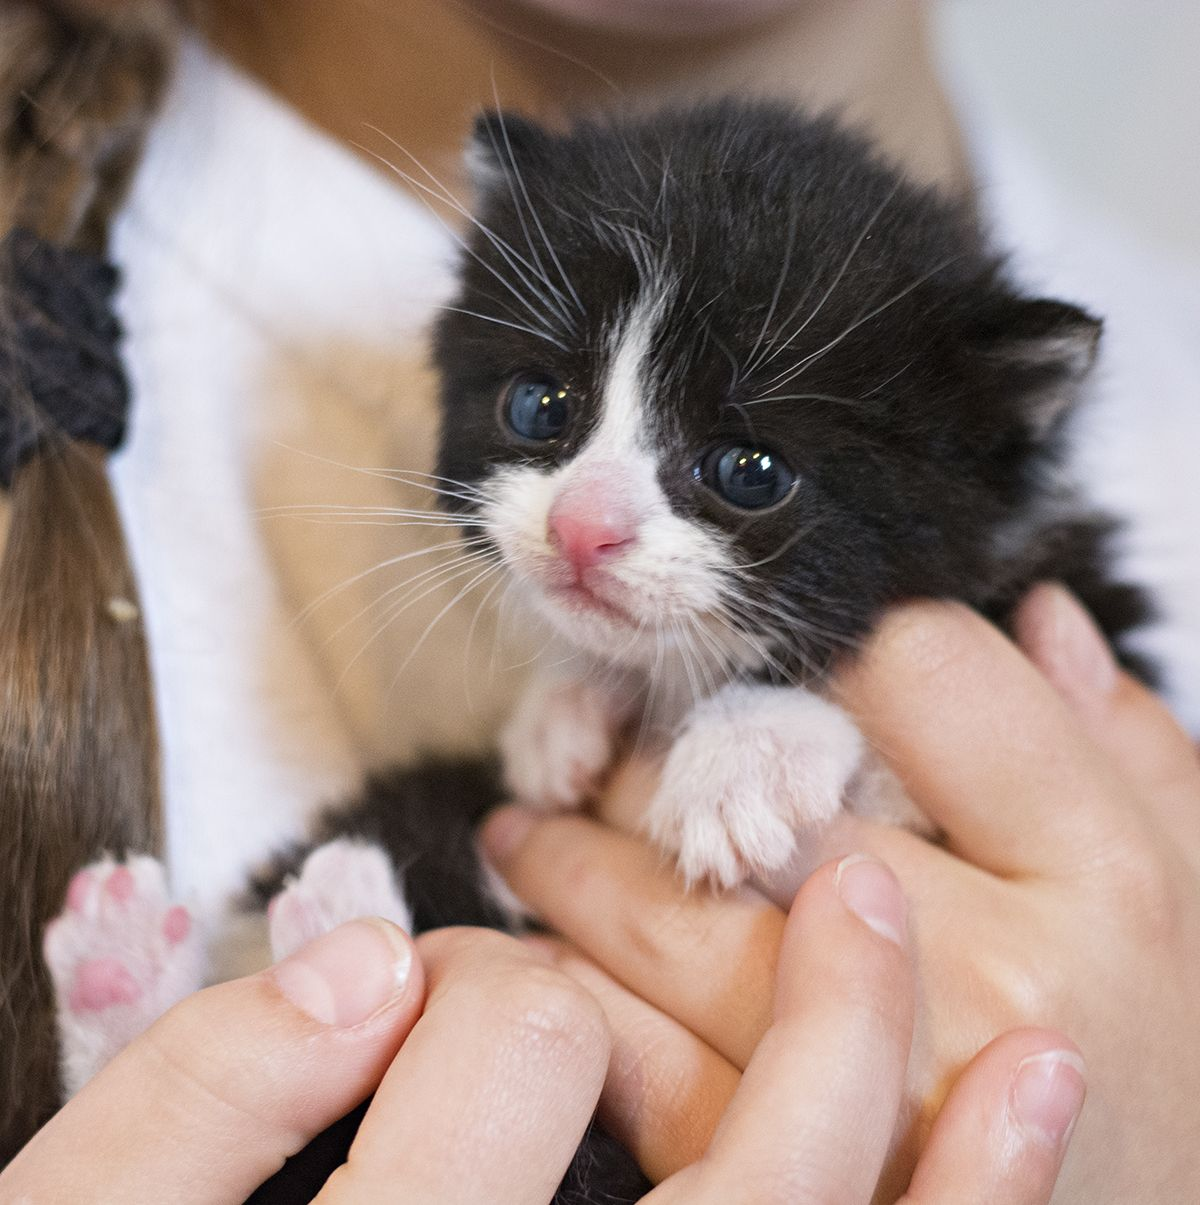 Can My Cat Eat The Same Food That I Eat Good Question Though The Answers Vary There Is A Lot To Know About Cat Food And C In 2020 Foster Kittens